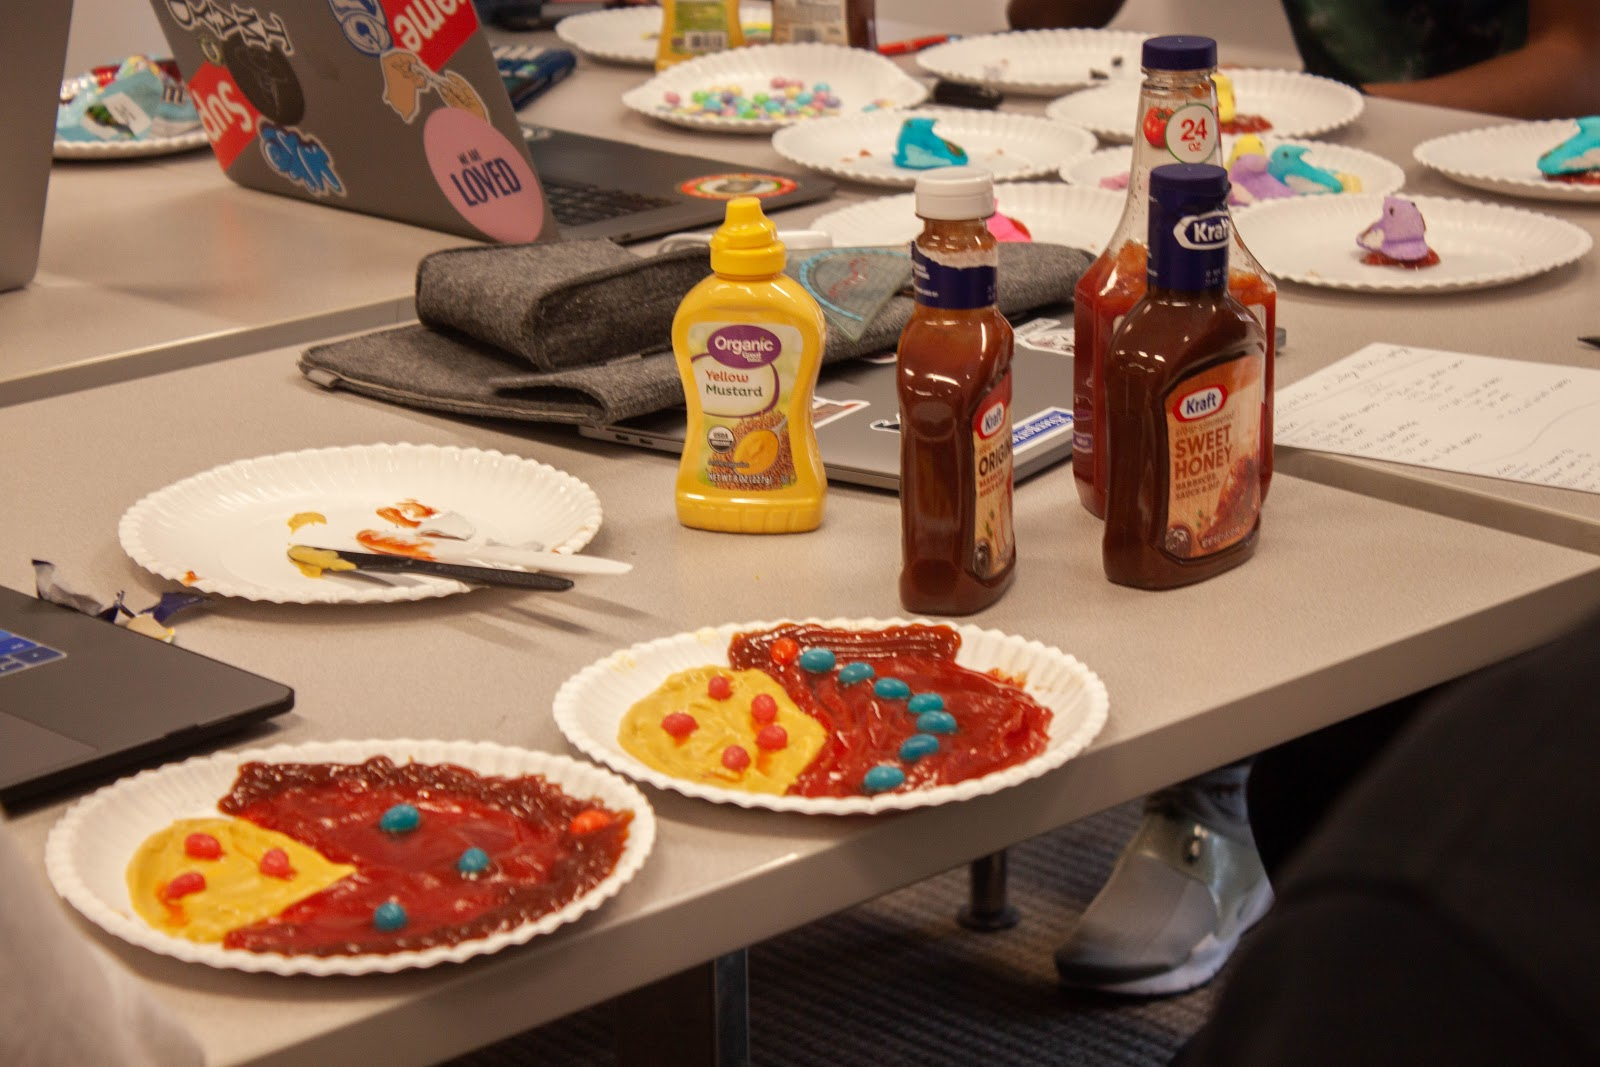 Condiments and candy representing data (Photo: Gissoo Doroudian)